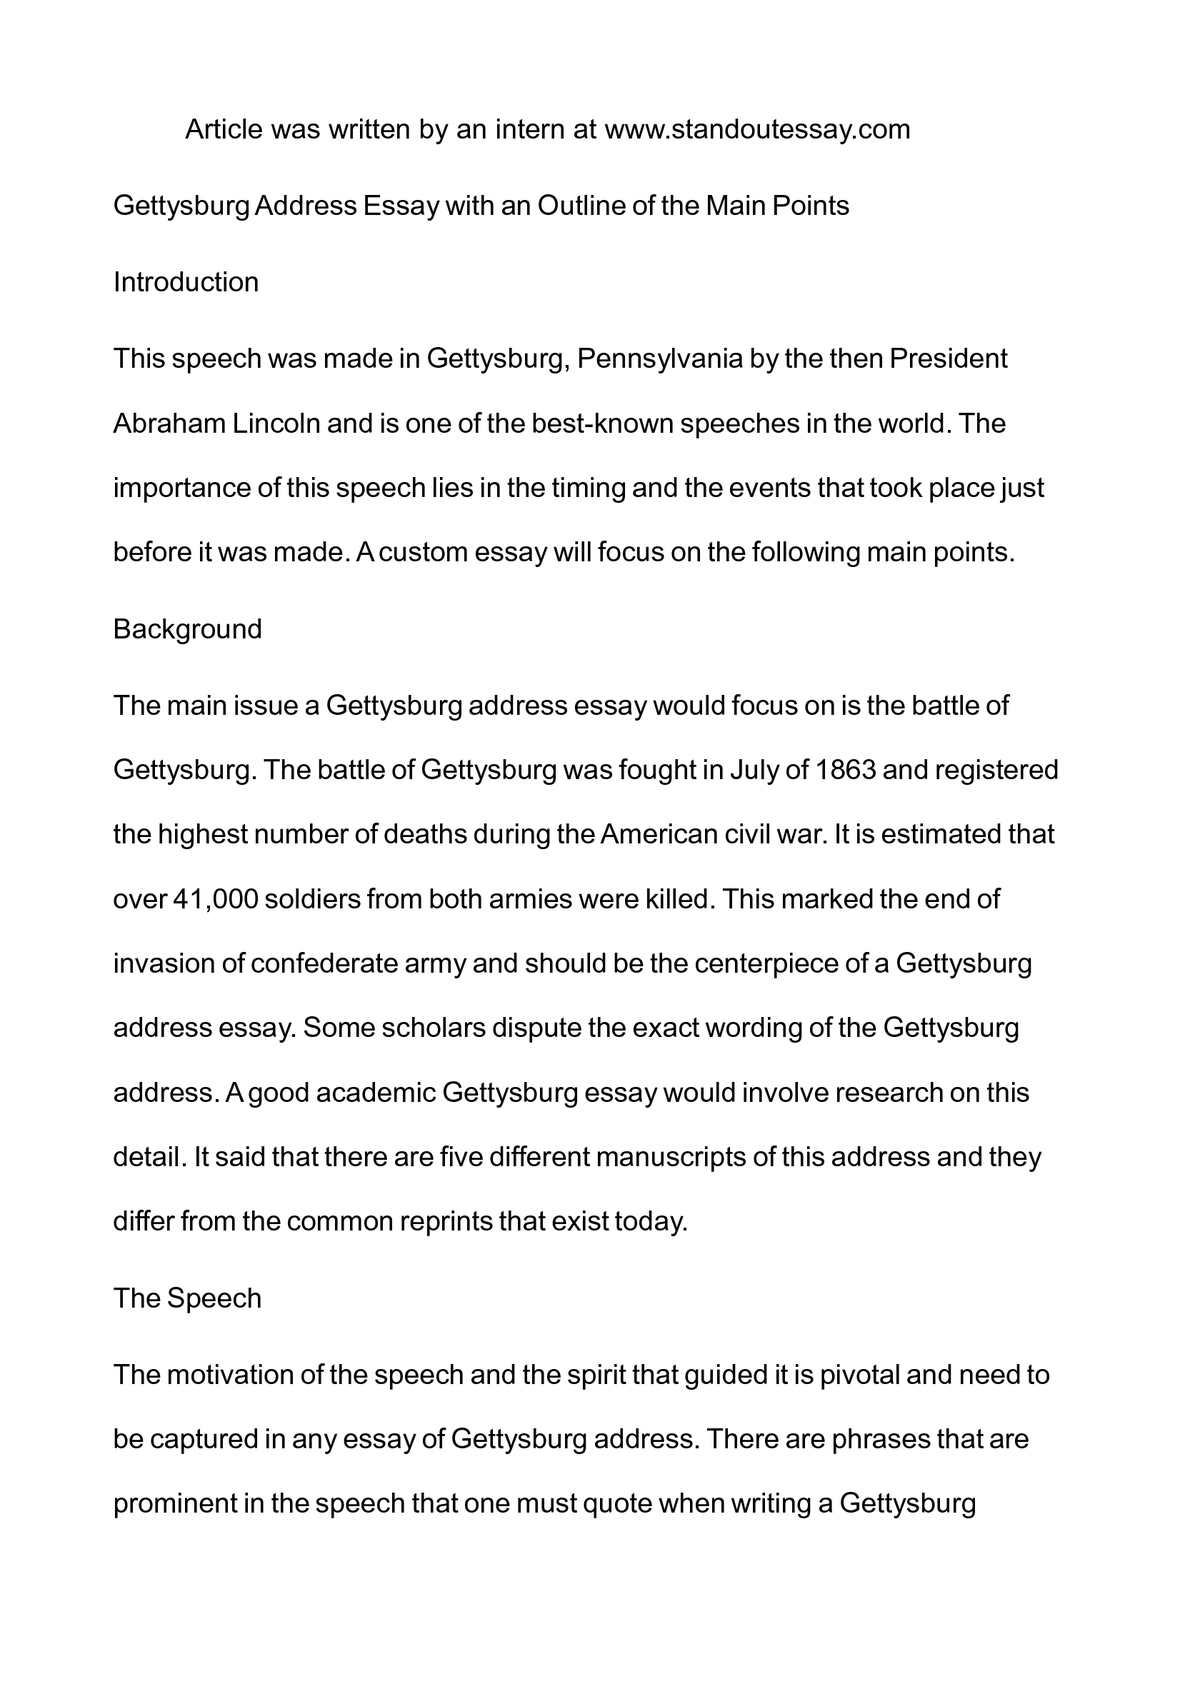 calam atilde copy o gettysburg address essay an outline of the main calamatildecopyo gettysburg address essay an outline of the main points introduction